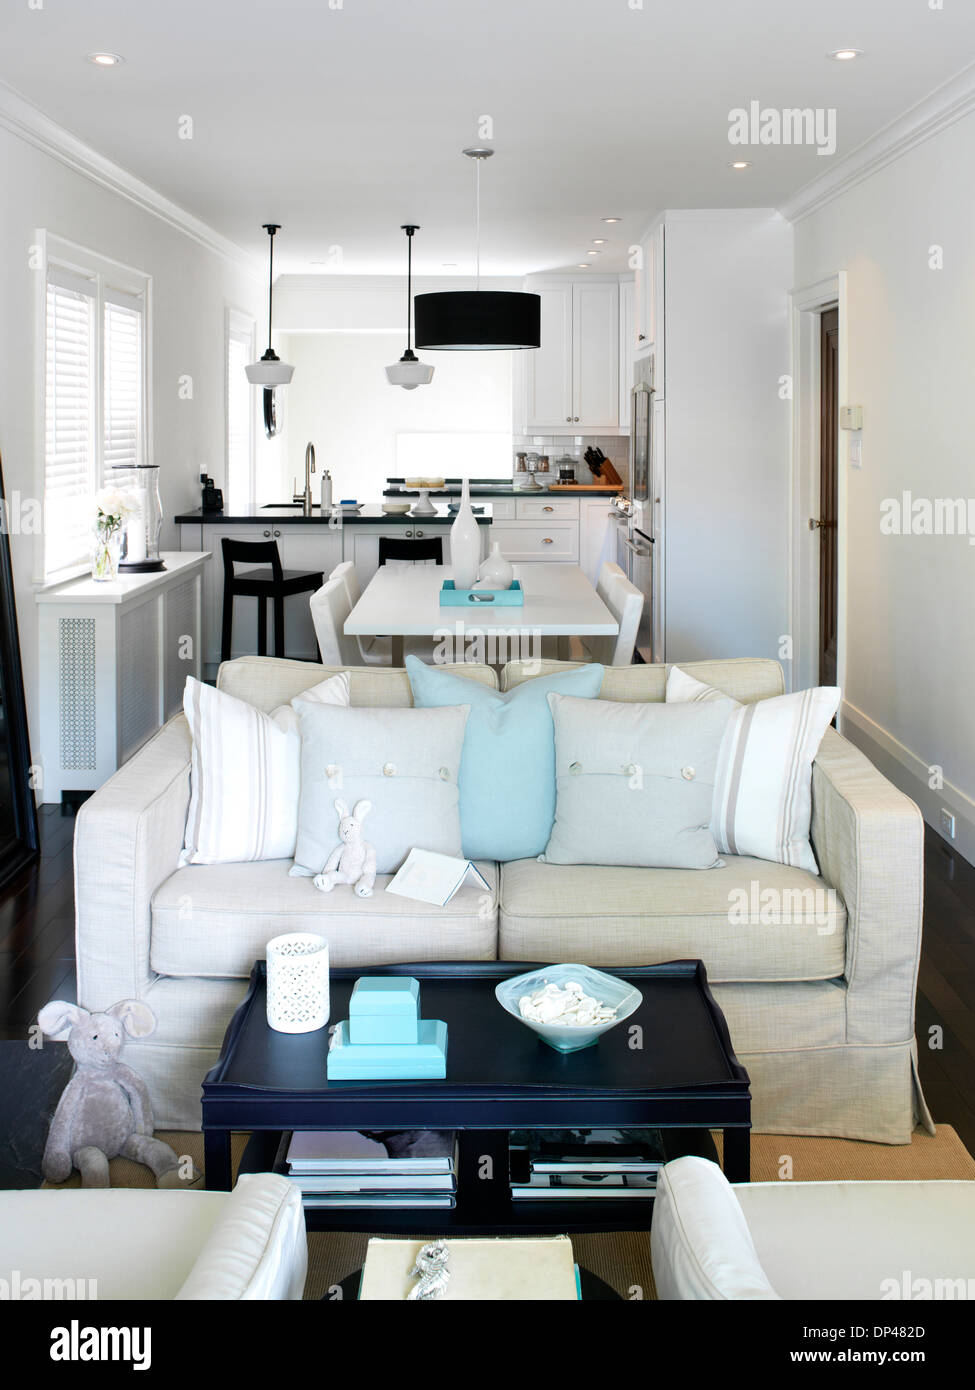 Home Interior Of Open Concept Living Room Dining Room And Kitchen Toronto Ontario Canada Stock Photo Alamy